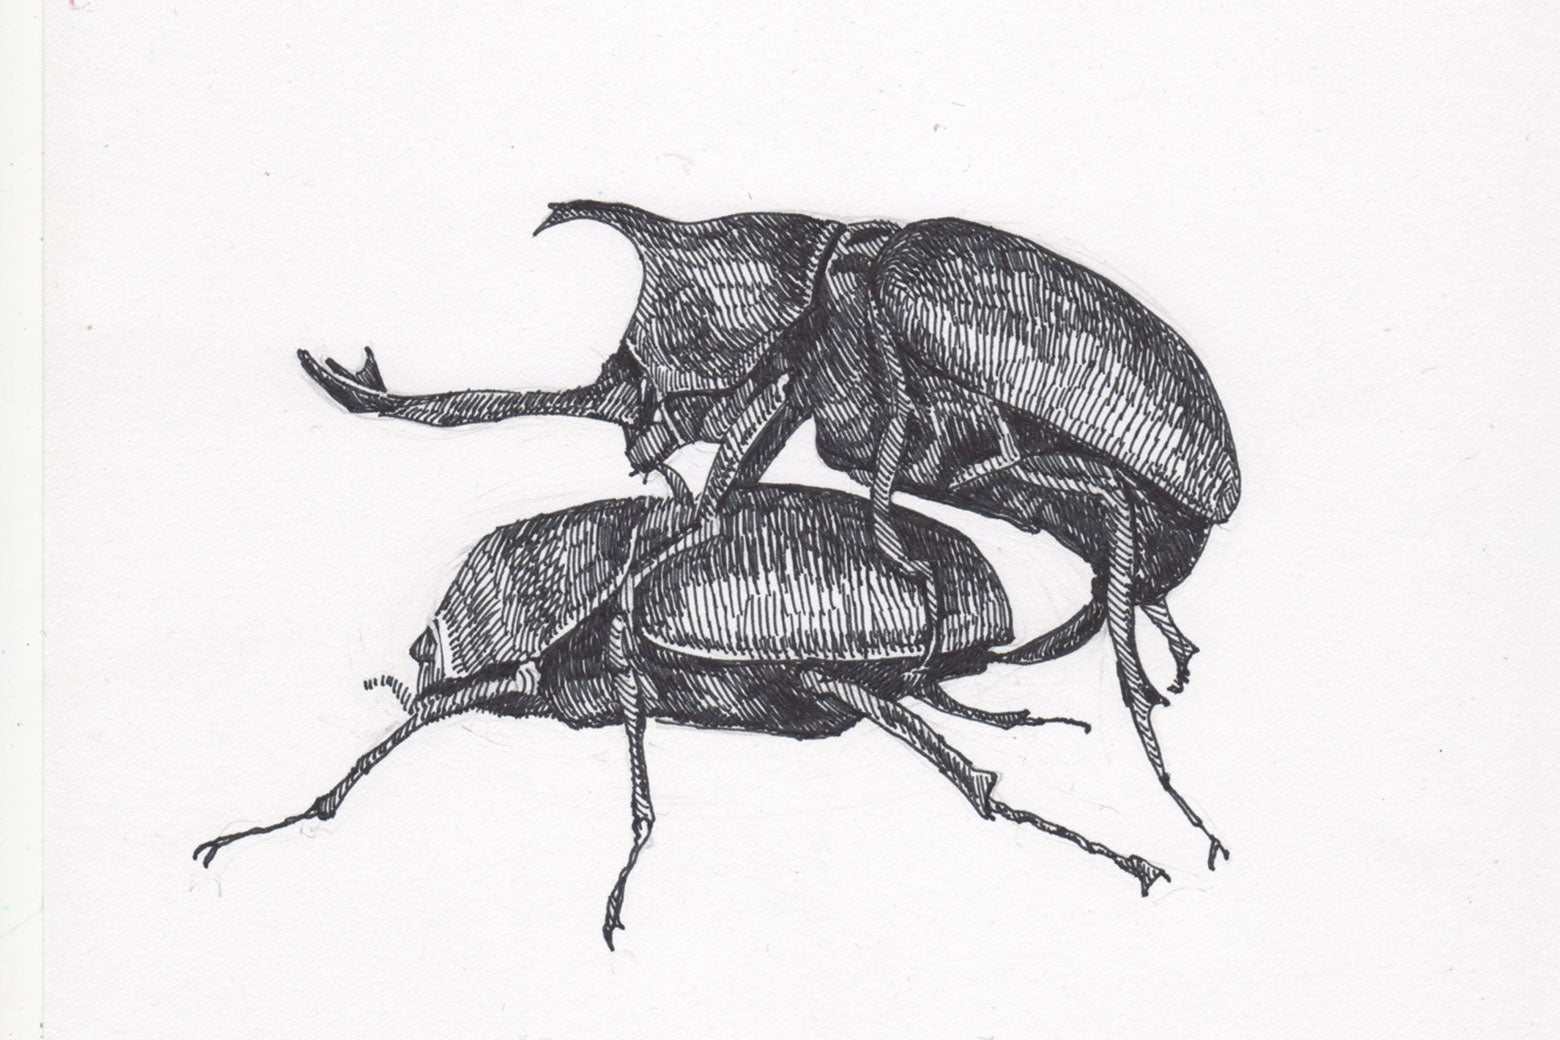 Rhino beetles doin' it.